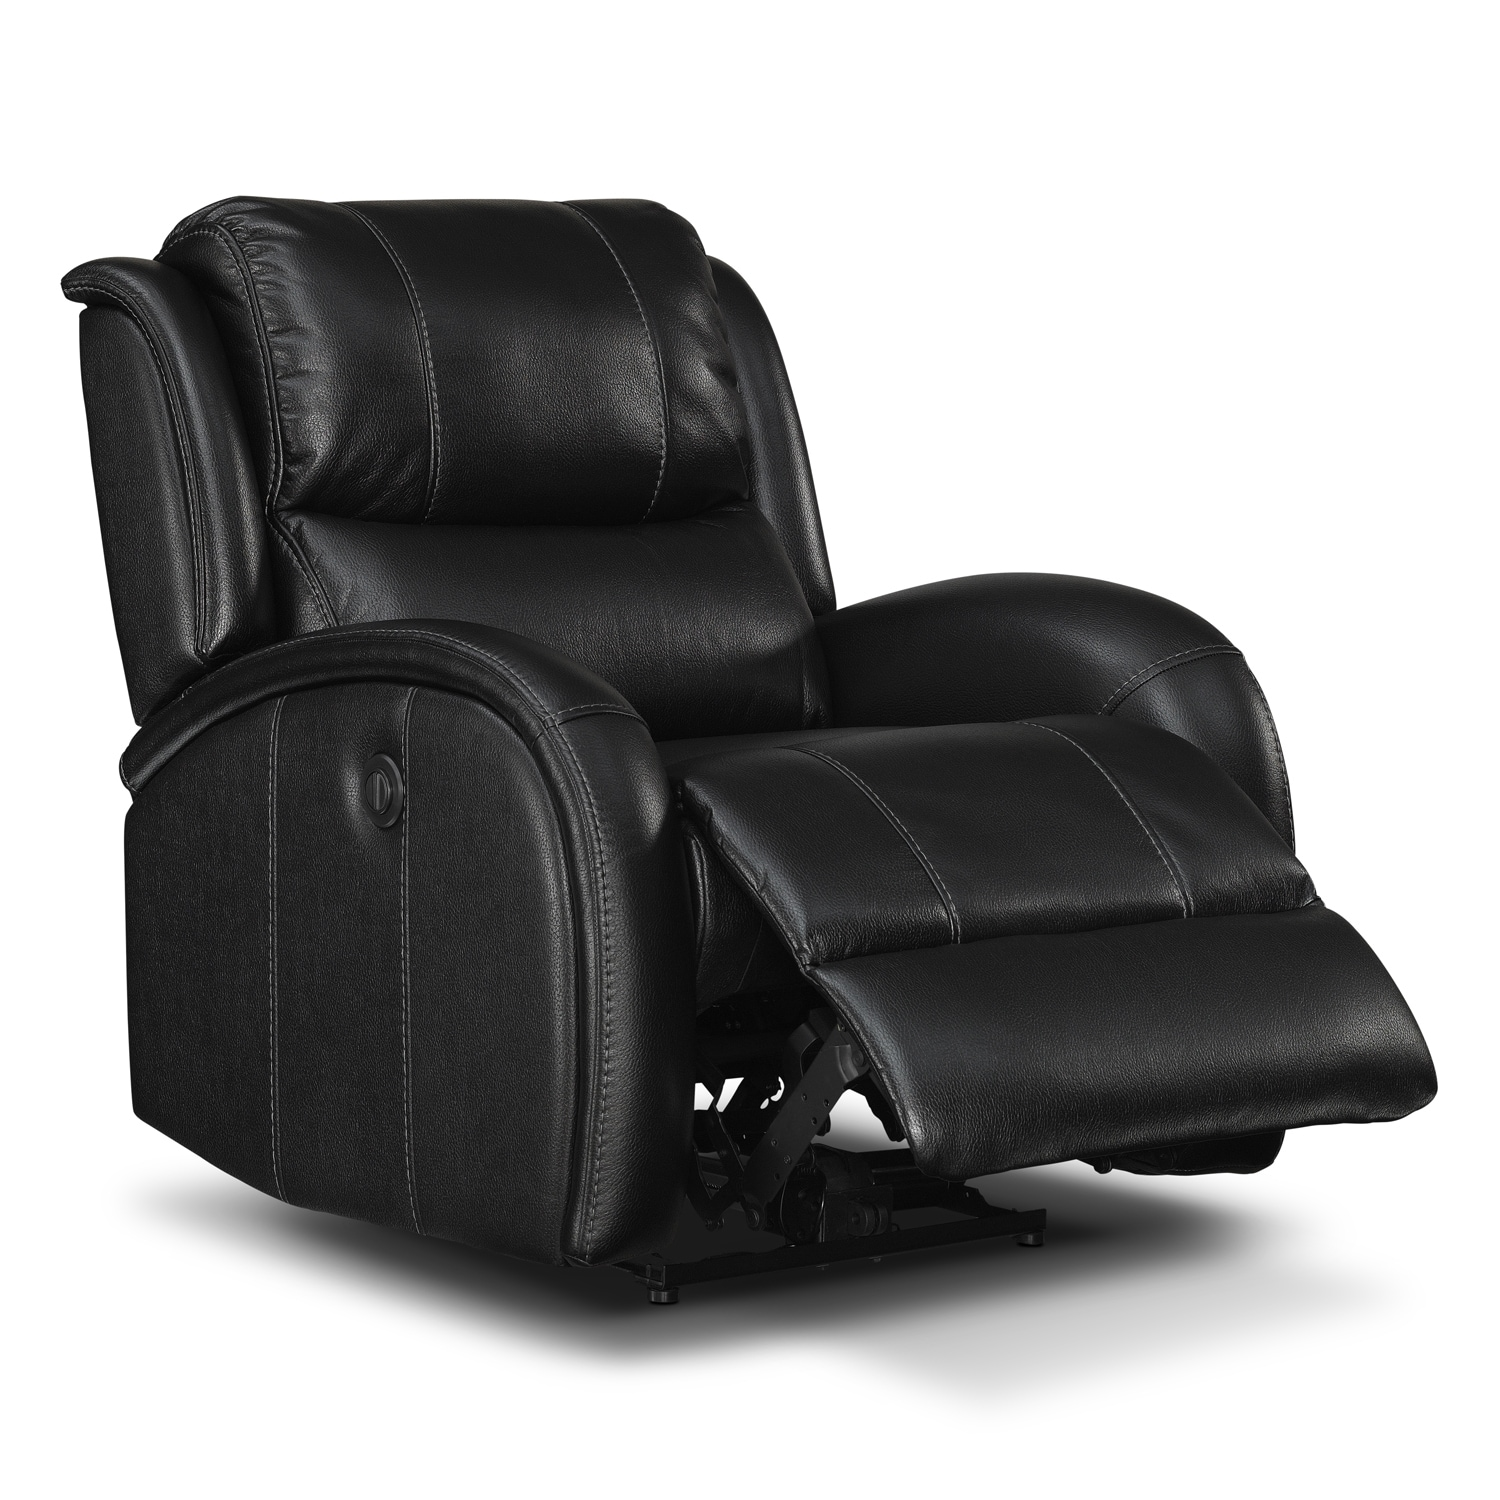 big lots zero gravity chair and tall office 500 lbs capacity corsica power recliner black american signature furniture